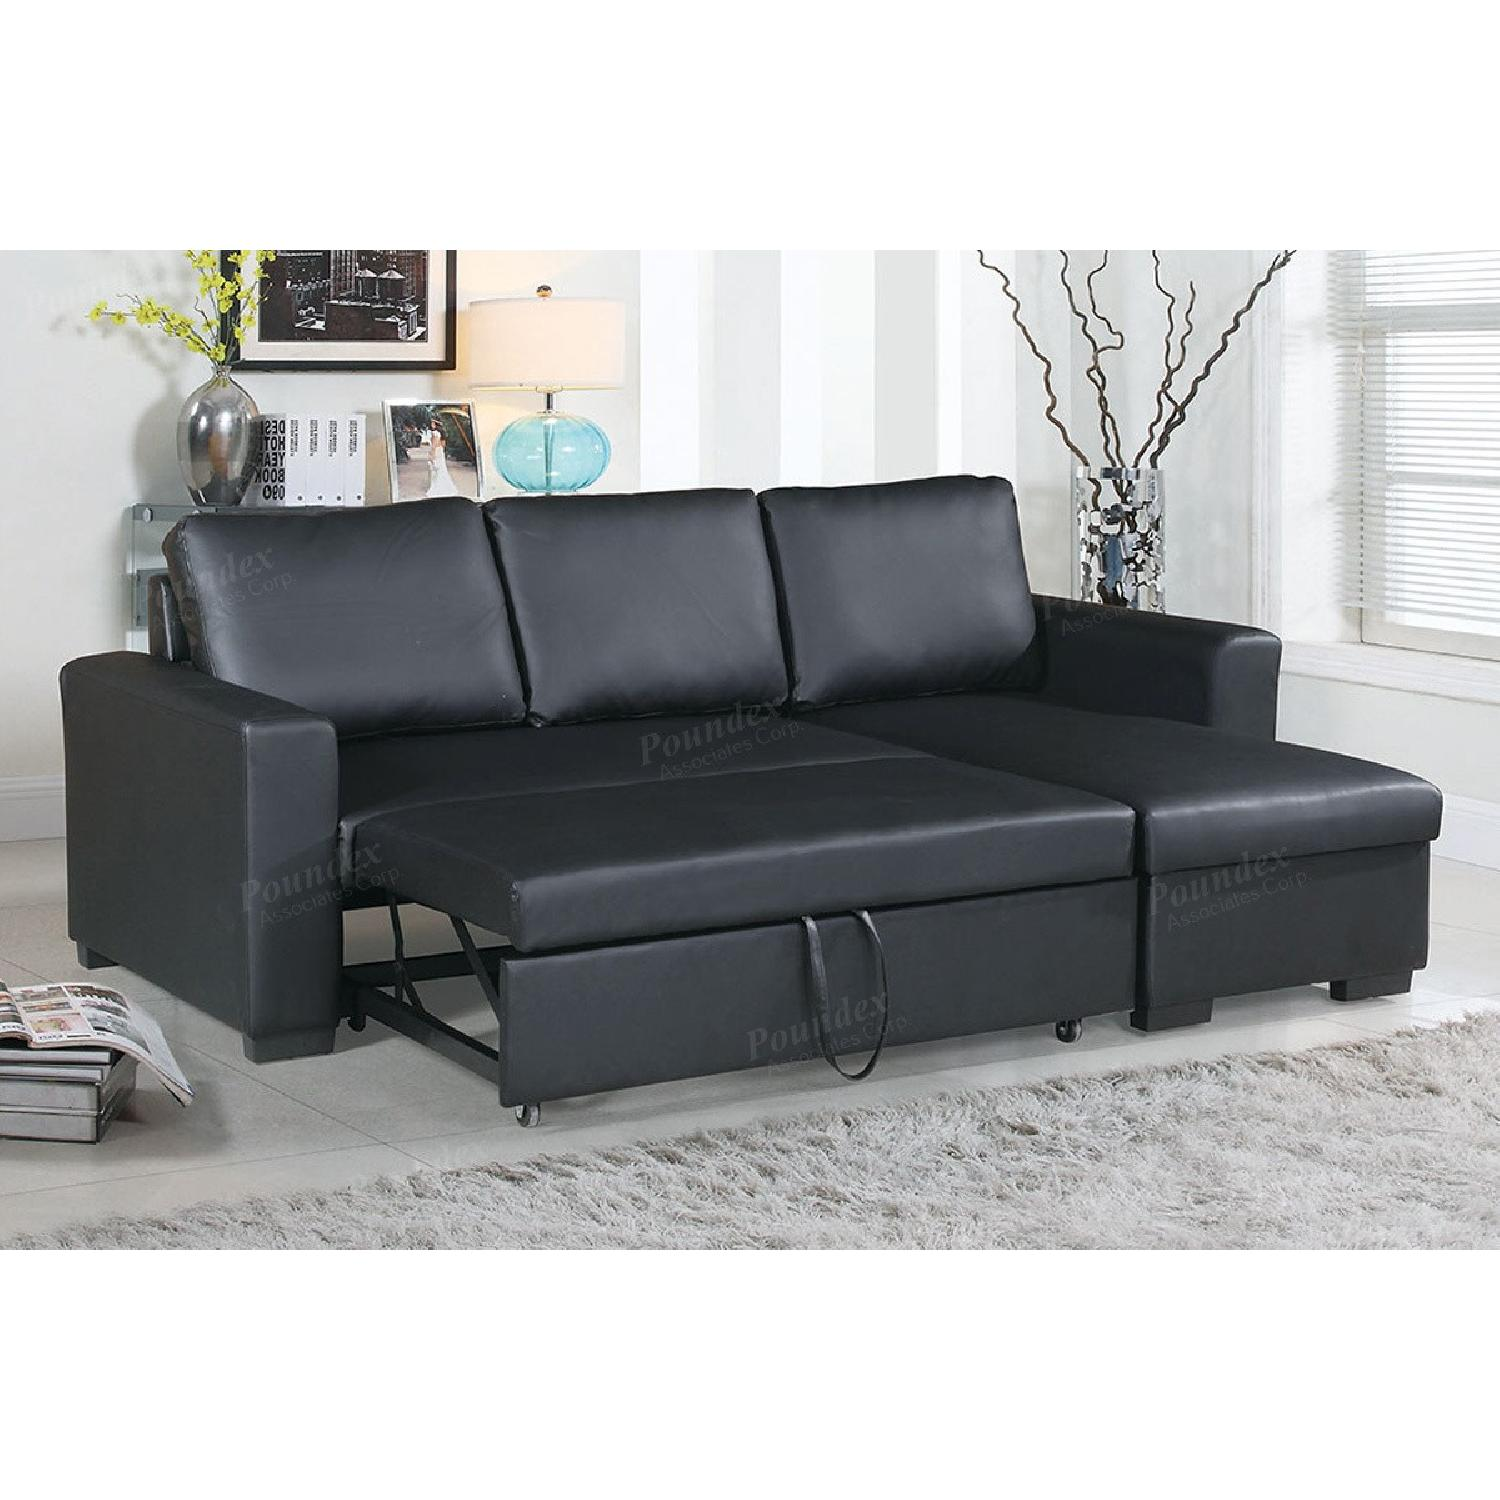 Black Bonded Leather Pull-Out Bed Sectional w/ Storage - image-1